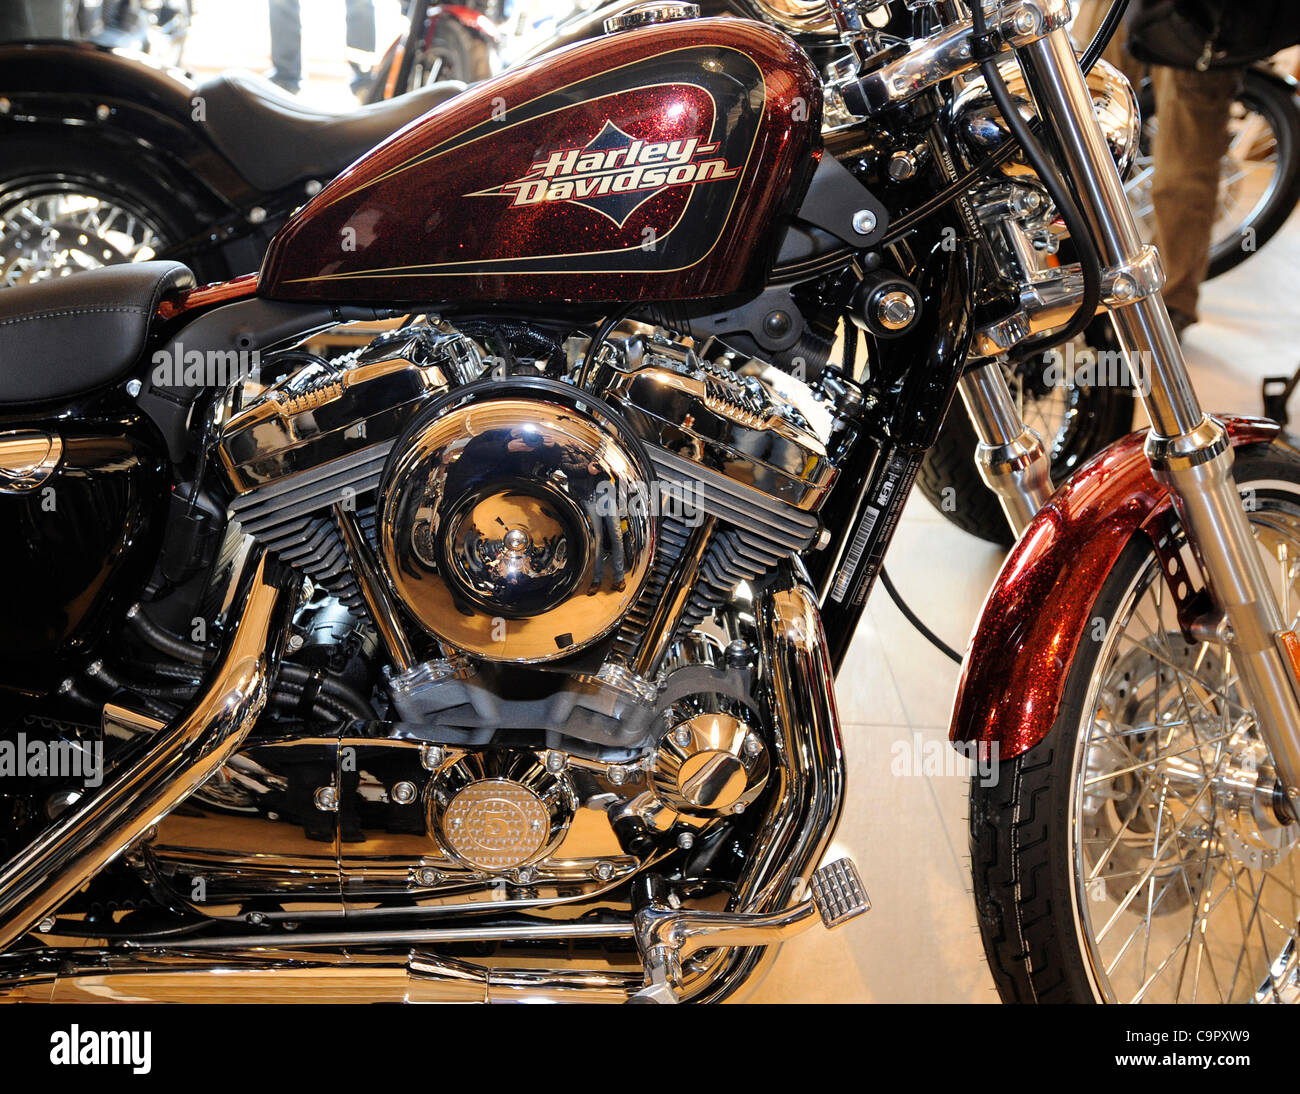 Harley Davidson Company Introduced Two New Models Xl 1200v Sportster Stock Photo Alamy